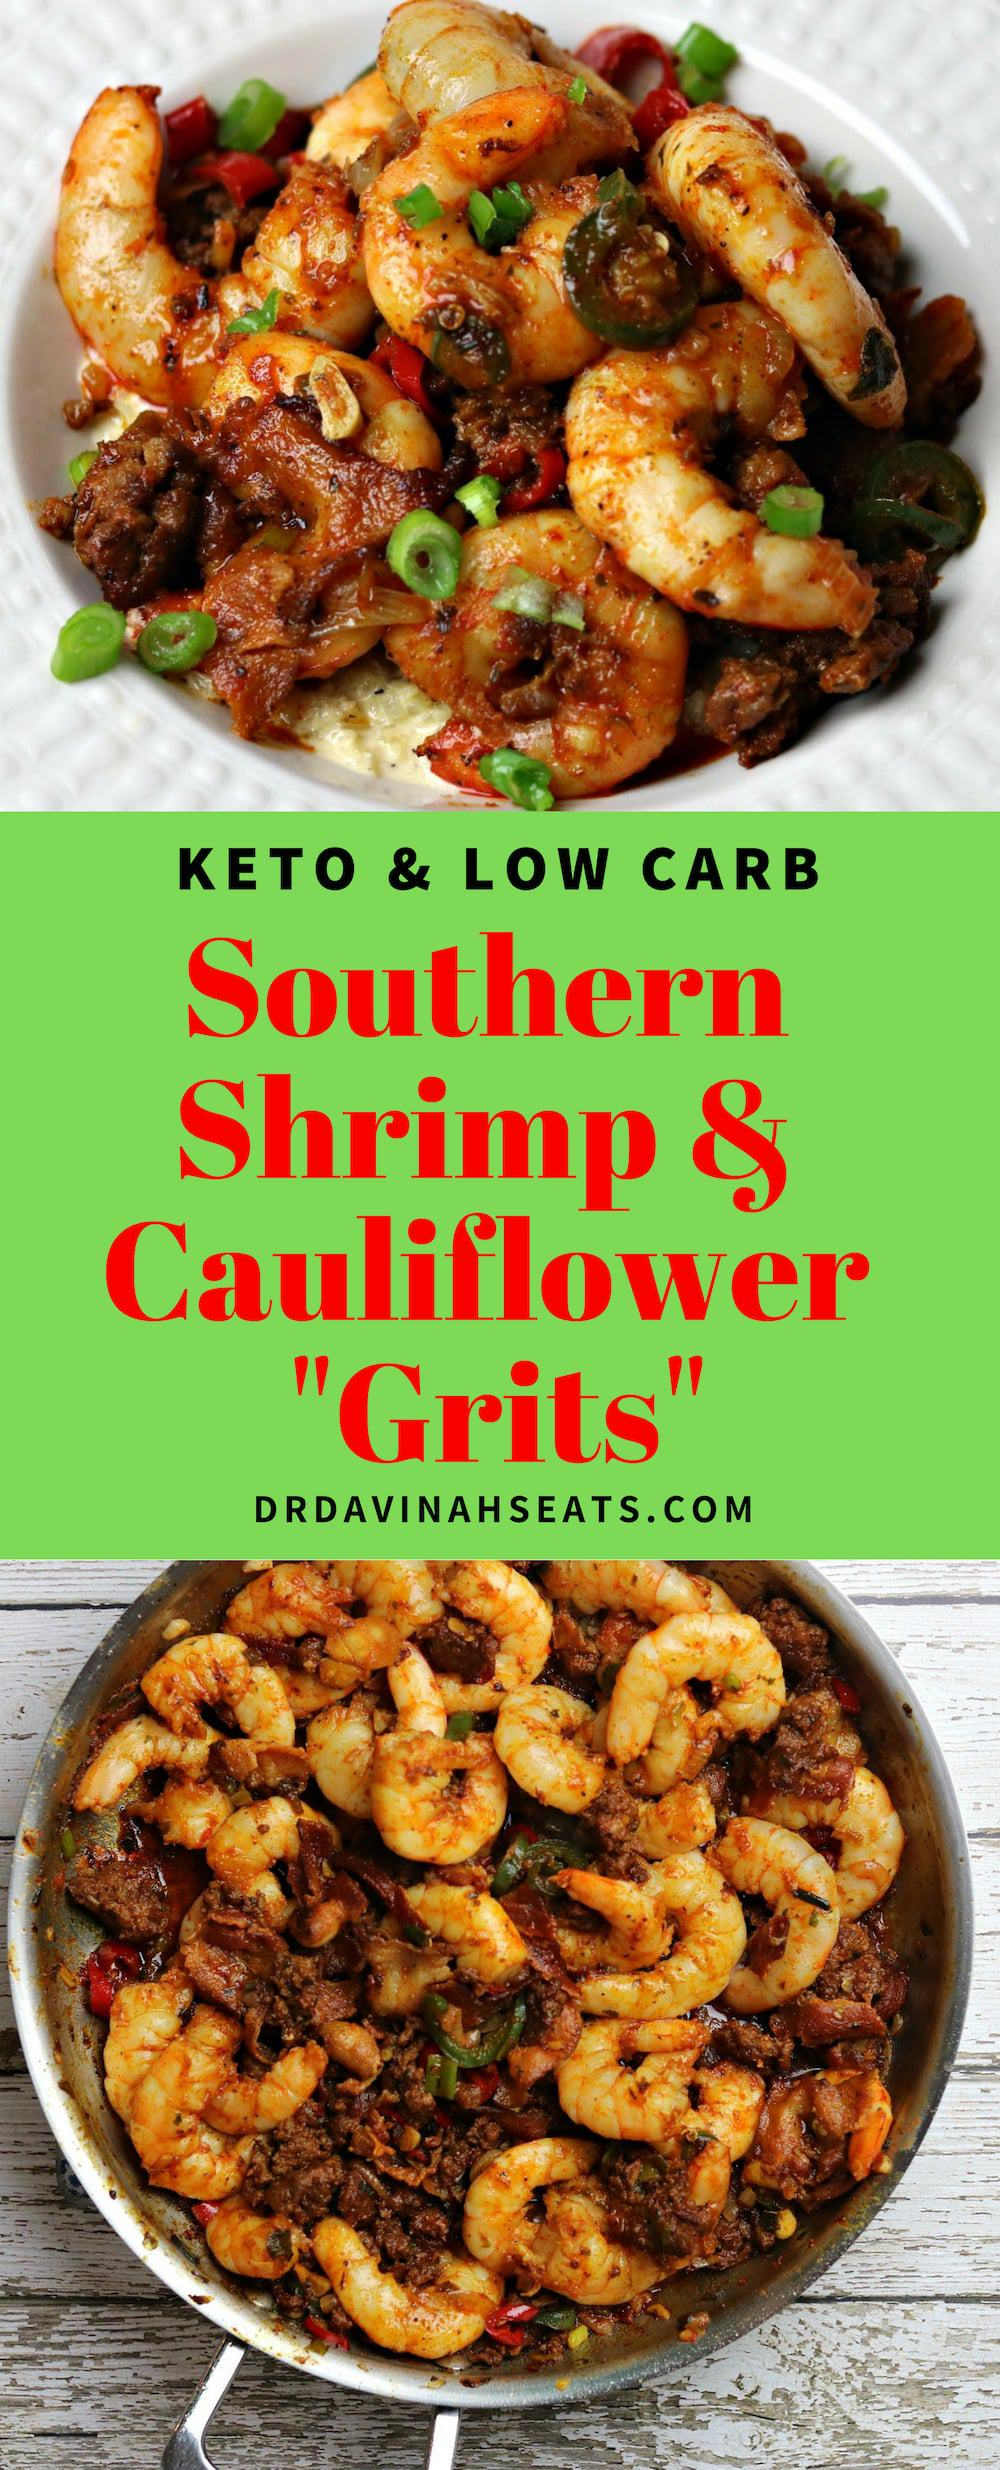 This is a keto-friendly Southern Shrimp & Grits recipe that will wow! The flavors of the shrimp, chorizo & bacon create a pan sauce that is a flavor explosion. I substitute cauliflower rice for the grits that are usually included in this dish. #keto #shrimp #shrimpandgrits #cauliflowerrice #lowcarb